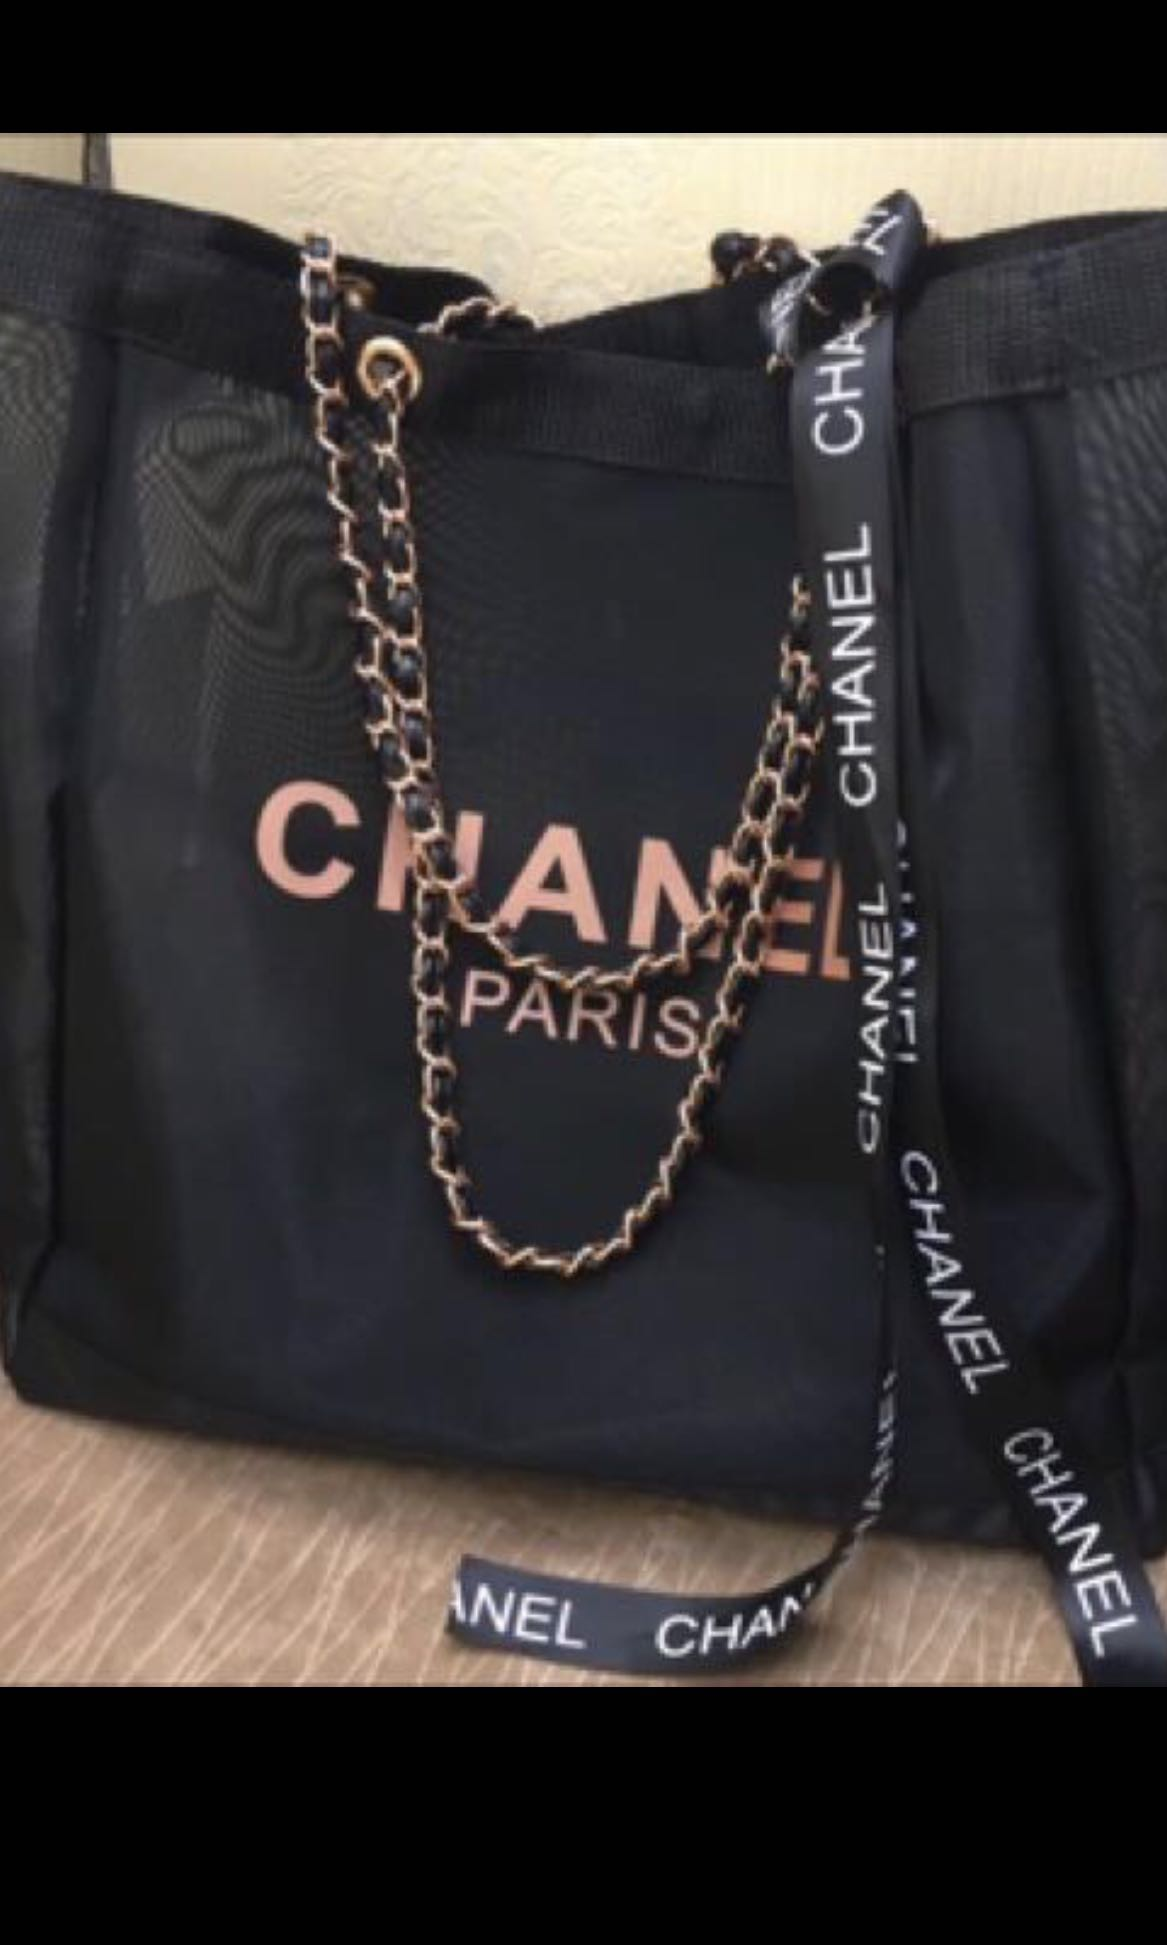 331b25dd97bf Pre CNY sale! Limited Edition Rose gold Chanel Makeup Tote Bag ...